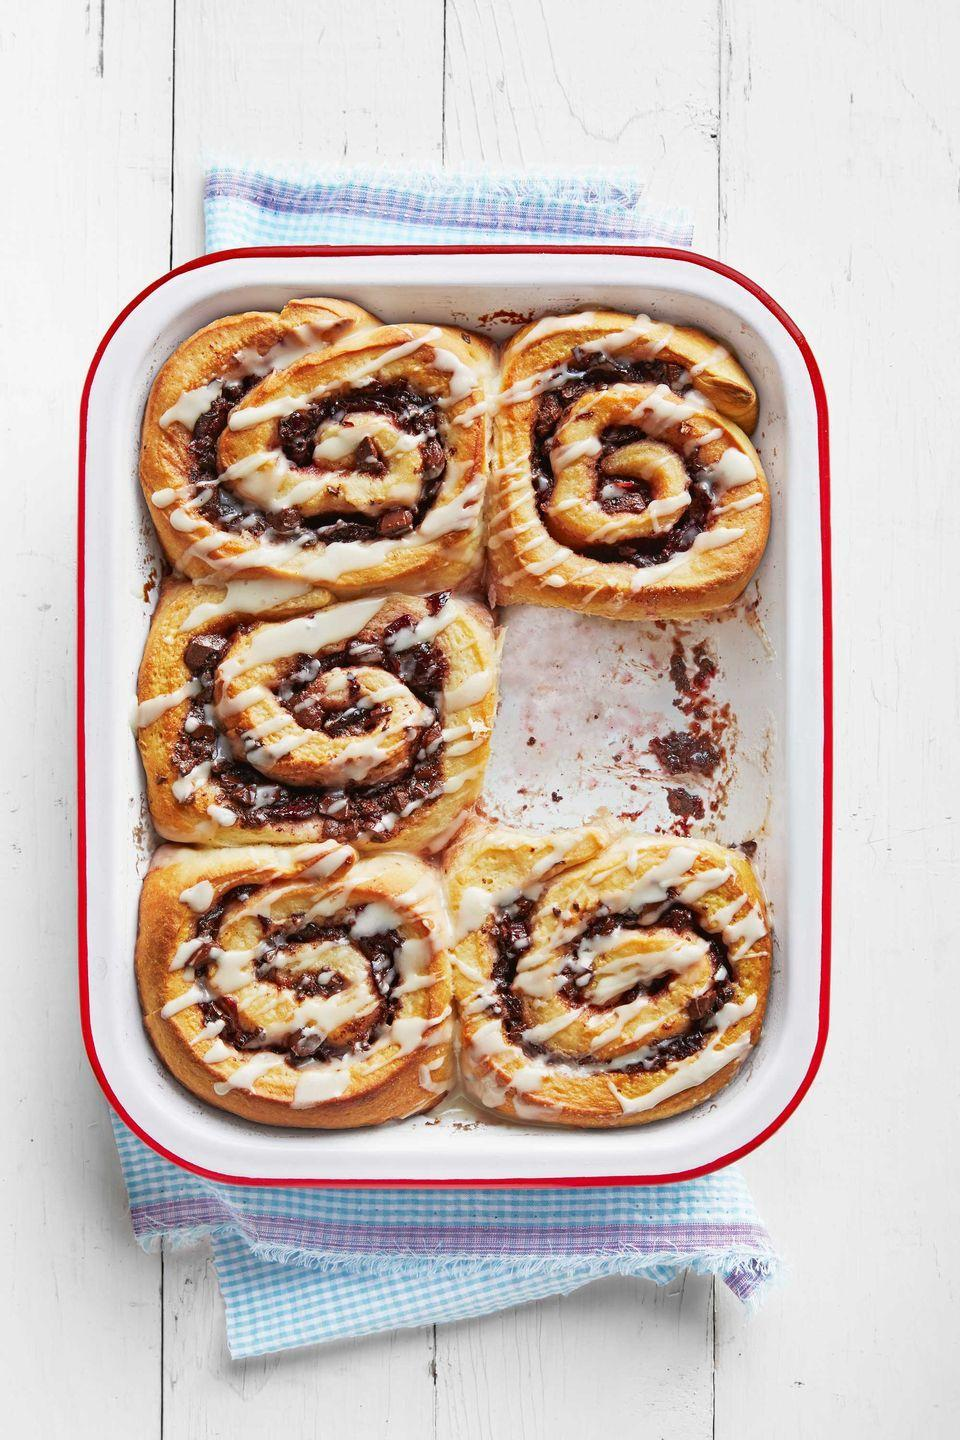 """<p>The smell of these decadent treats baking will have everyone out of bed in no time.<br></p><p><strong><a href=""""https://www.countryliving.com/food-drinks/recipes/a38954/chocolate-cherry-cinnamon-rolls-recipe/"""" rel=""""nofollow noopener"""" target=""""_blank"""" data-ylk=""""slk:Get the recipe"""" class=""""link rapid-noclick-resp"""">Get the recipe</a>.</strong></p>"""